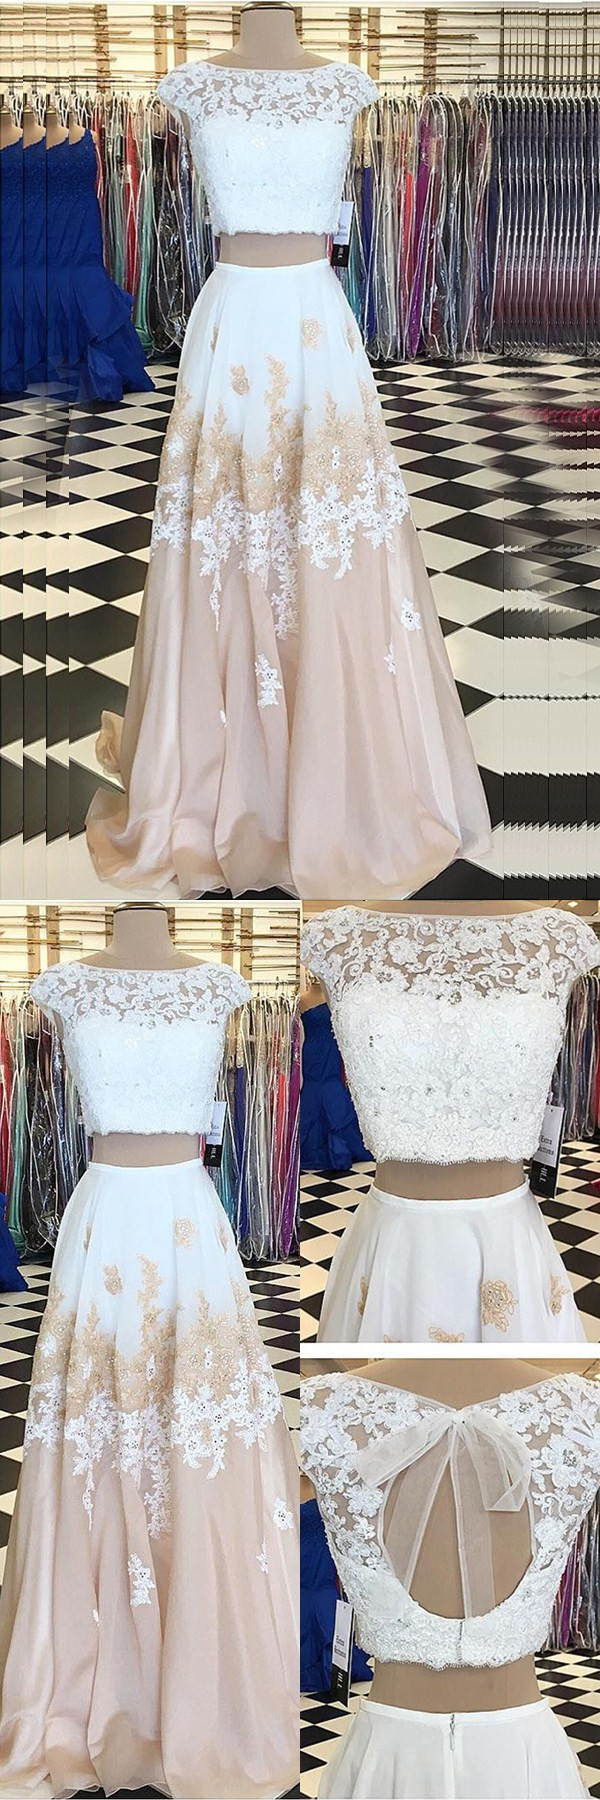 Two Piece Bateau Champagne Chiffon Sweep Train Beaded Prom Dress With Appliques Champagne Prom Dress Evening Gowns Cheap Prom Dresses [ 1800 x 600 Pixel ]